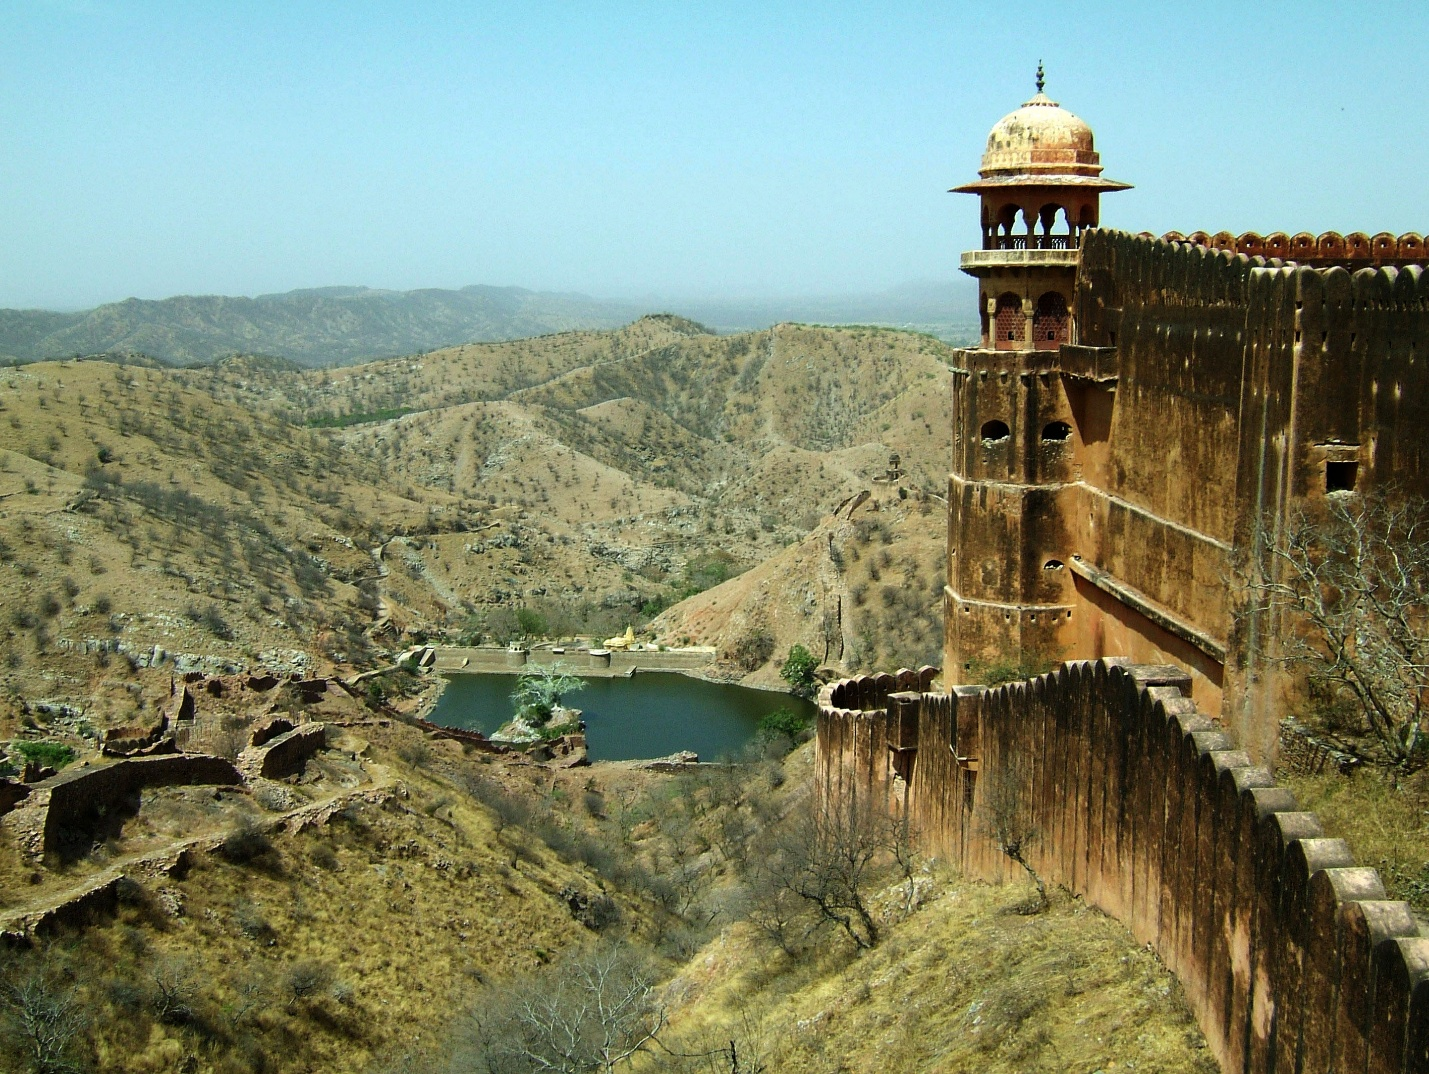 https://upload.wikimedia.org/wikipedia/commons/3/32/Rajasthan-Jaipur-Jaigarh-Fort-perimeter-walls-Apr-2004-01.JPG